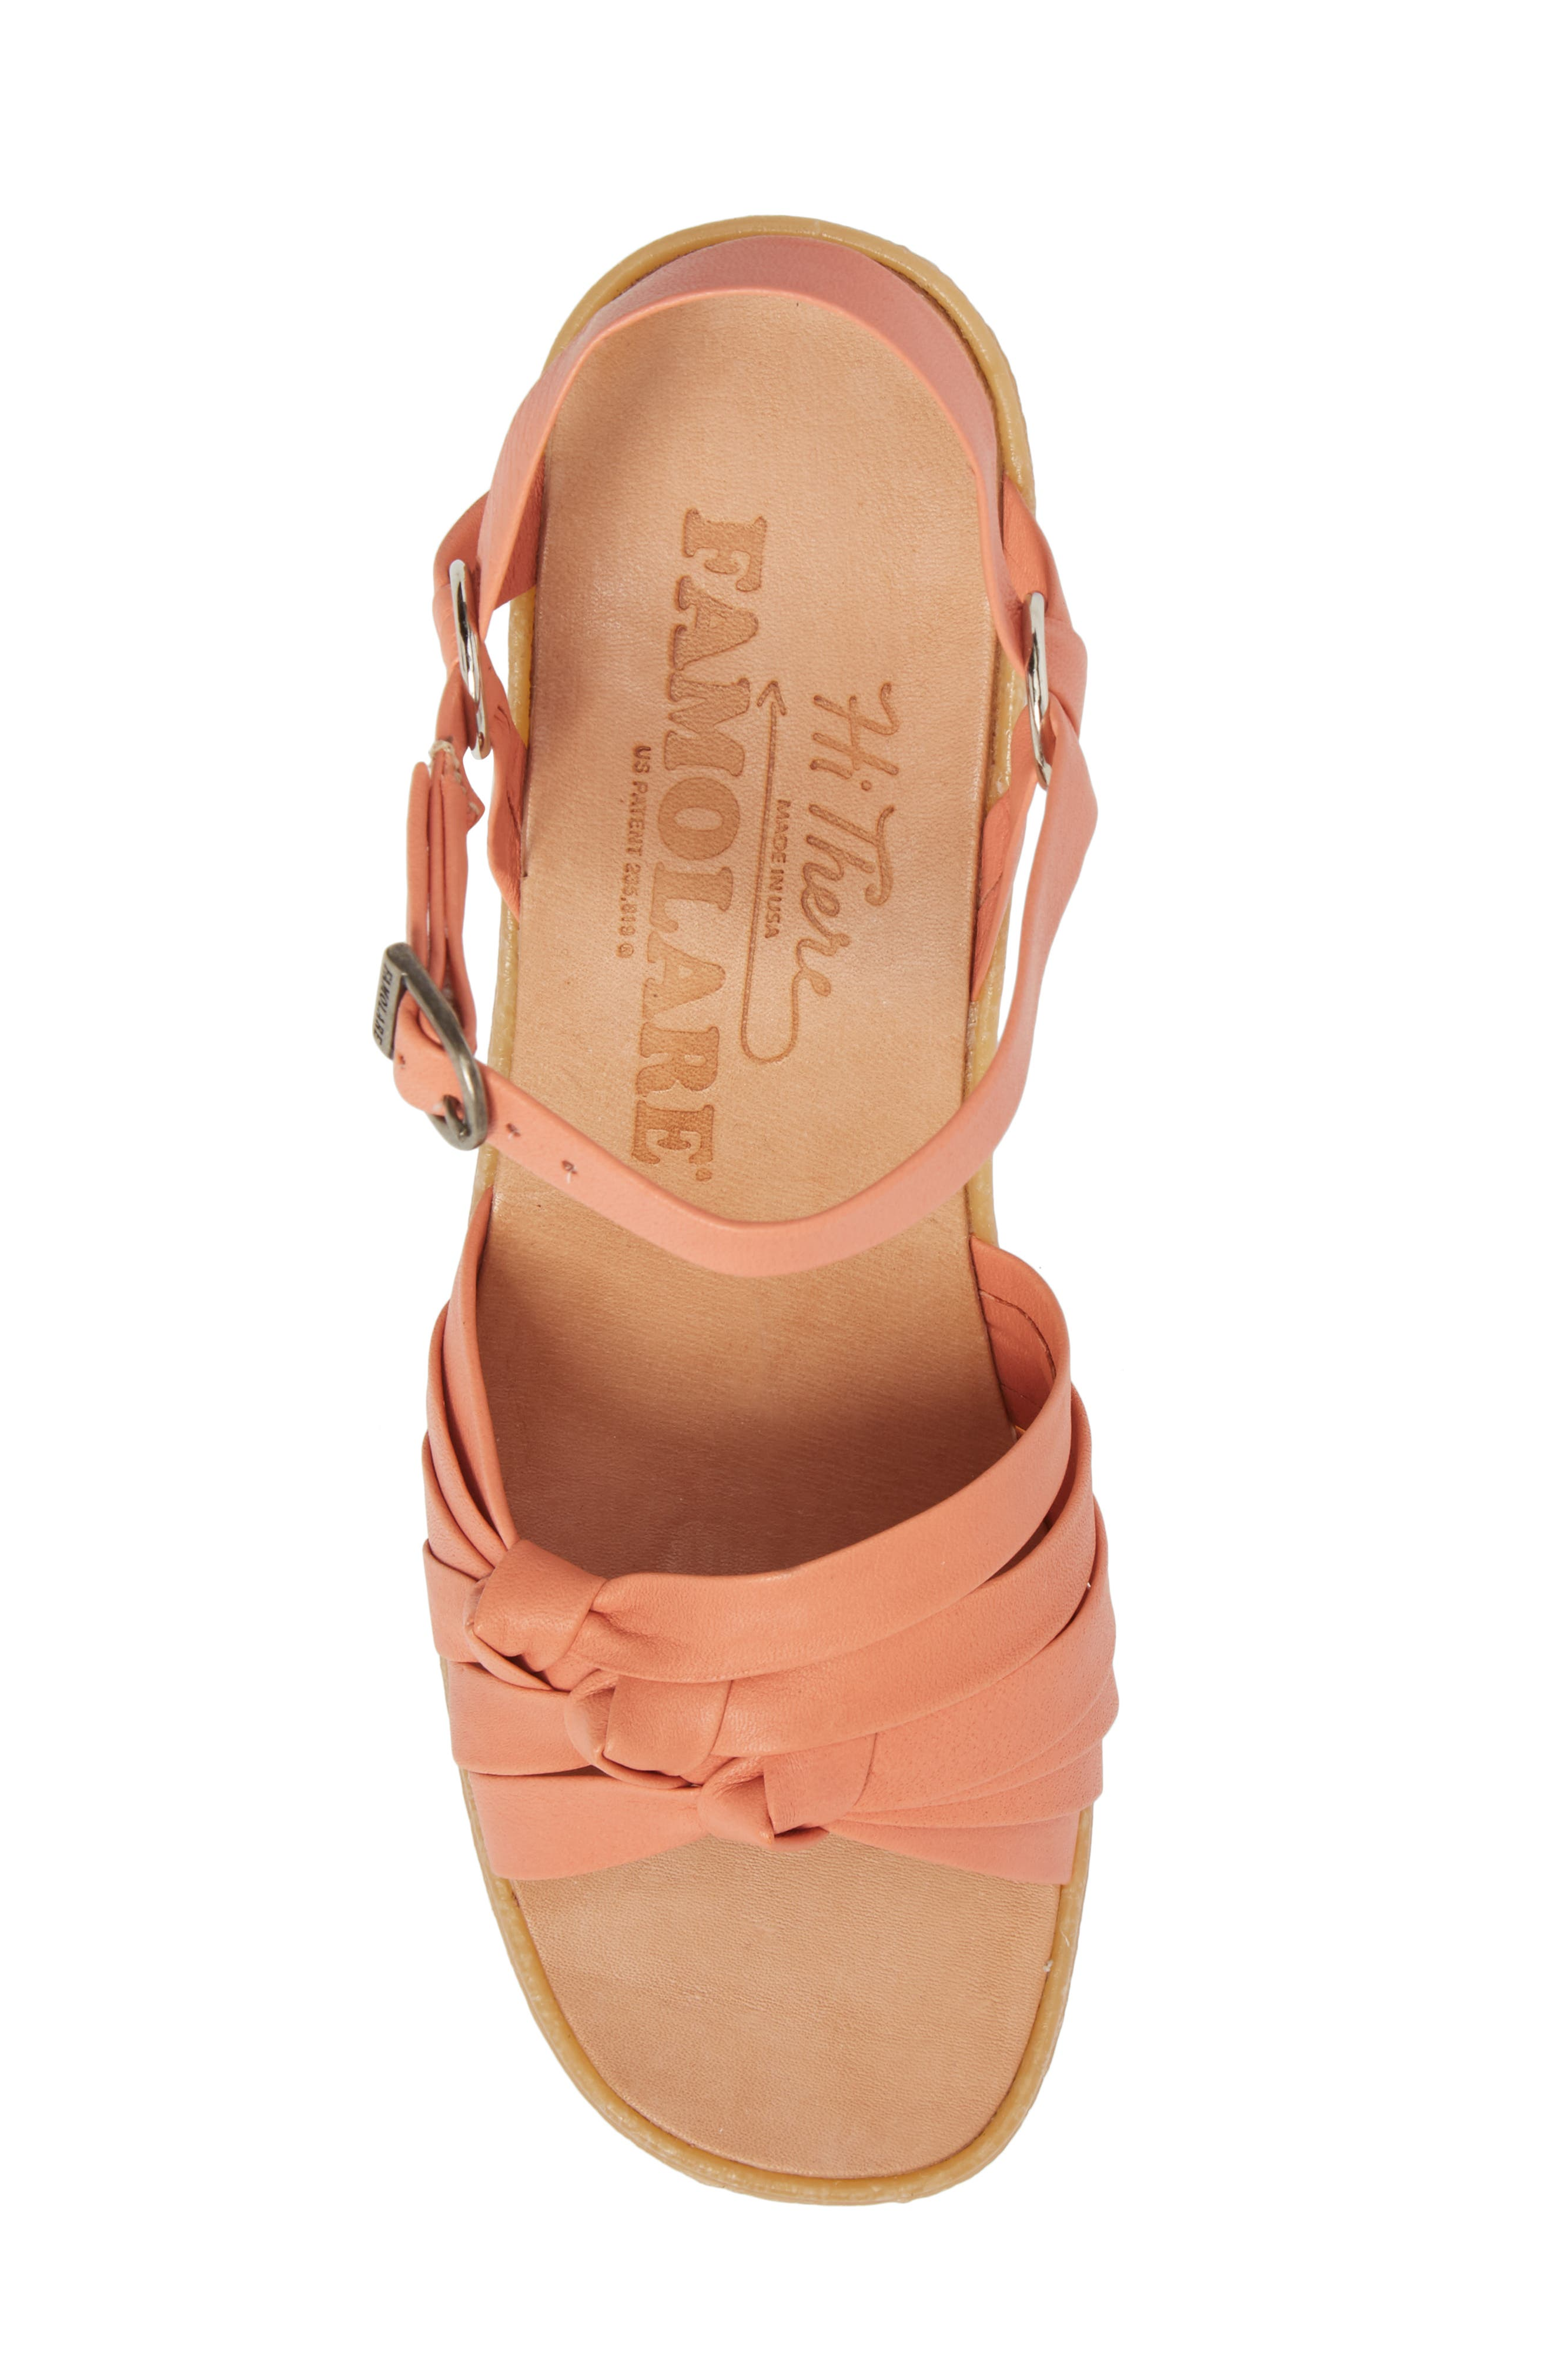 Knot So Fast Wedge Sandal,                             Alternate thumbnail 5, color,                             Salmon Leather